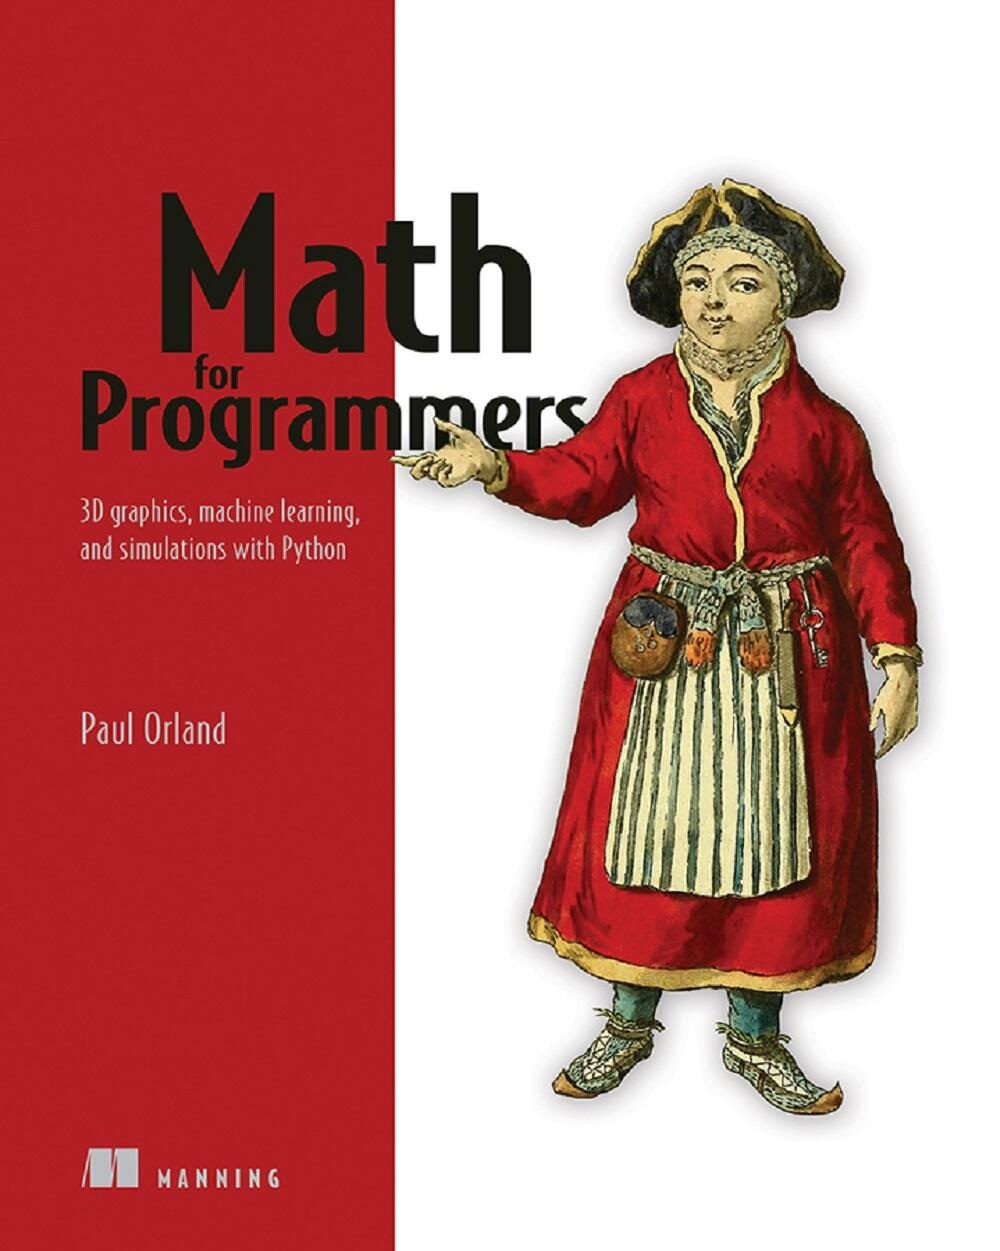 Math for Programmers (Manning)